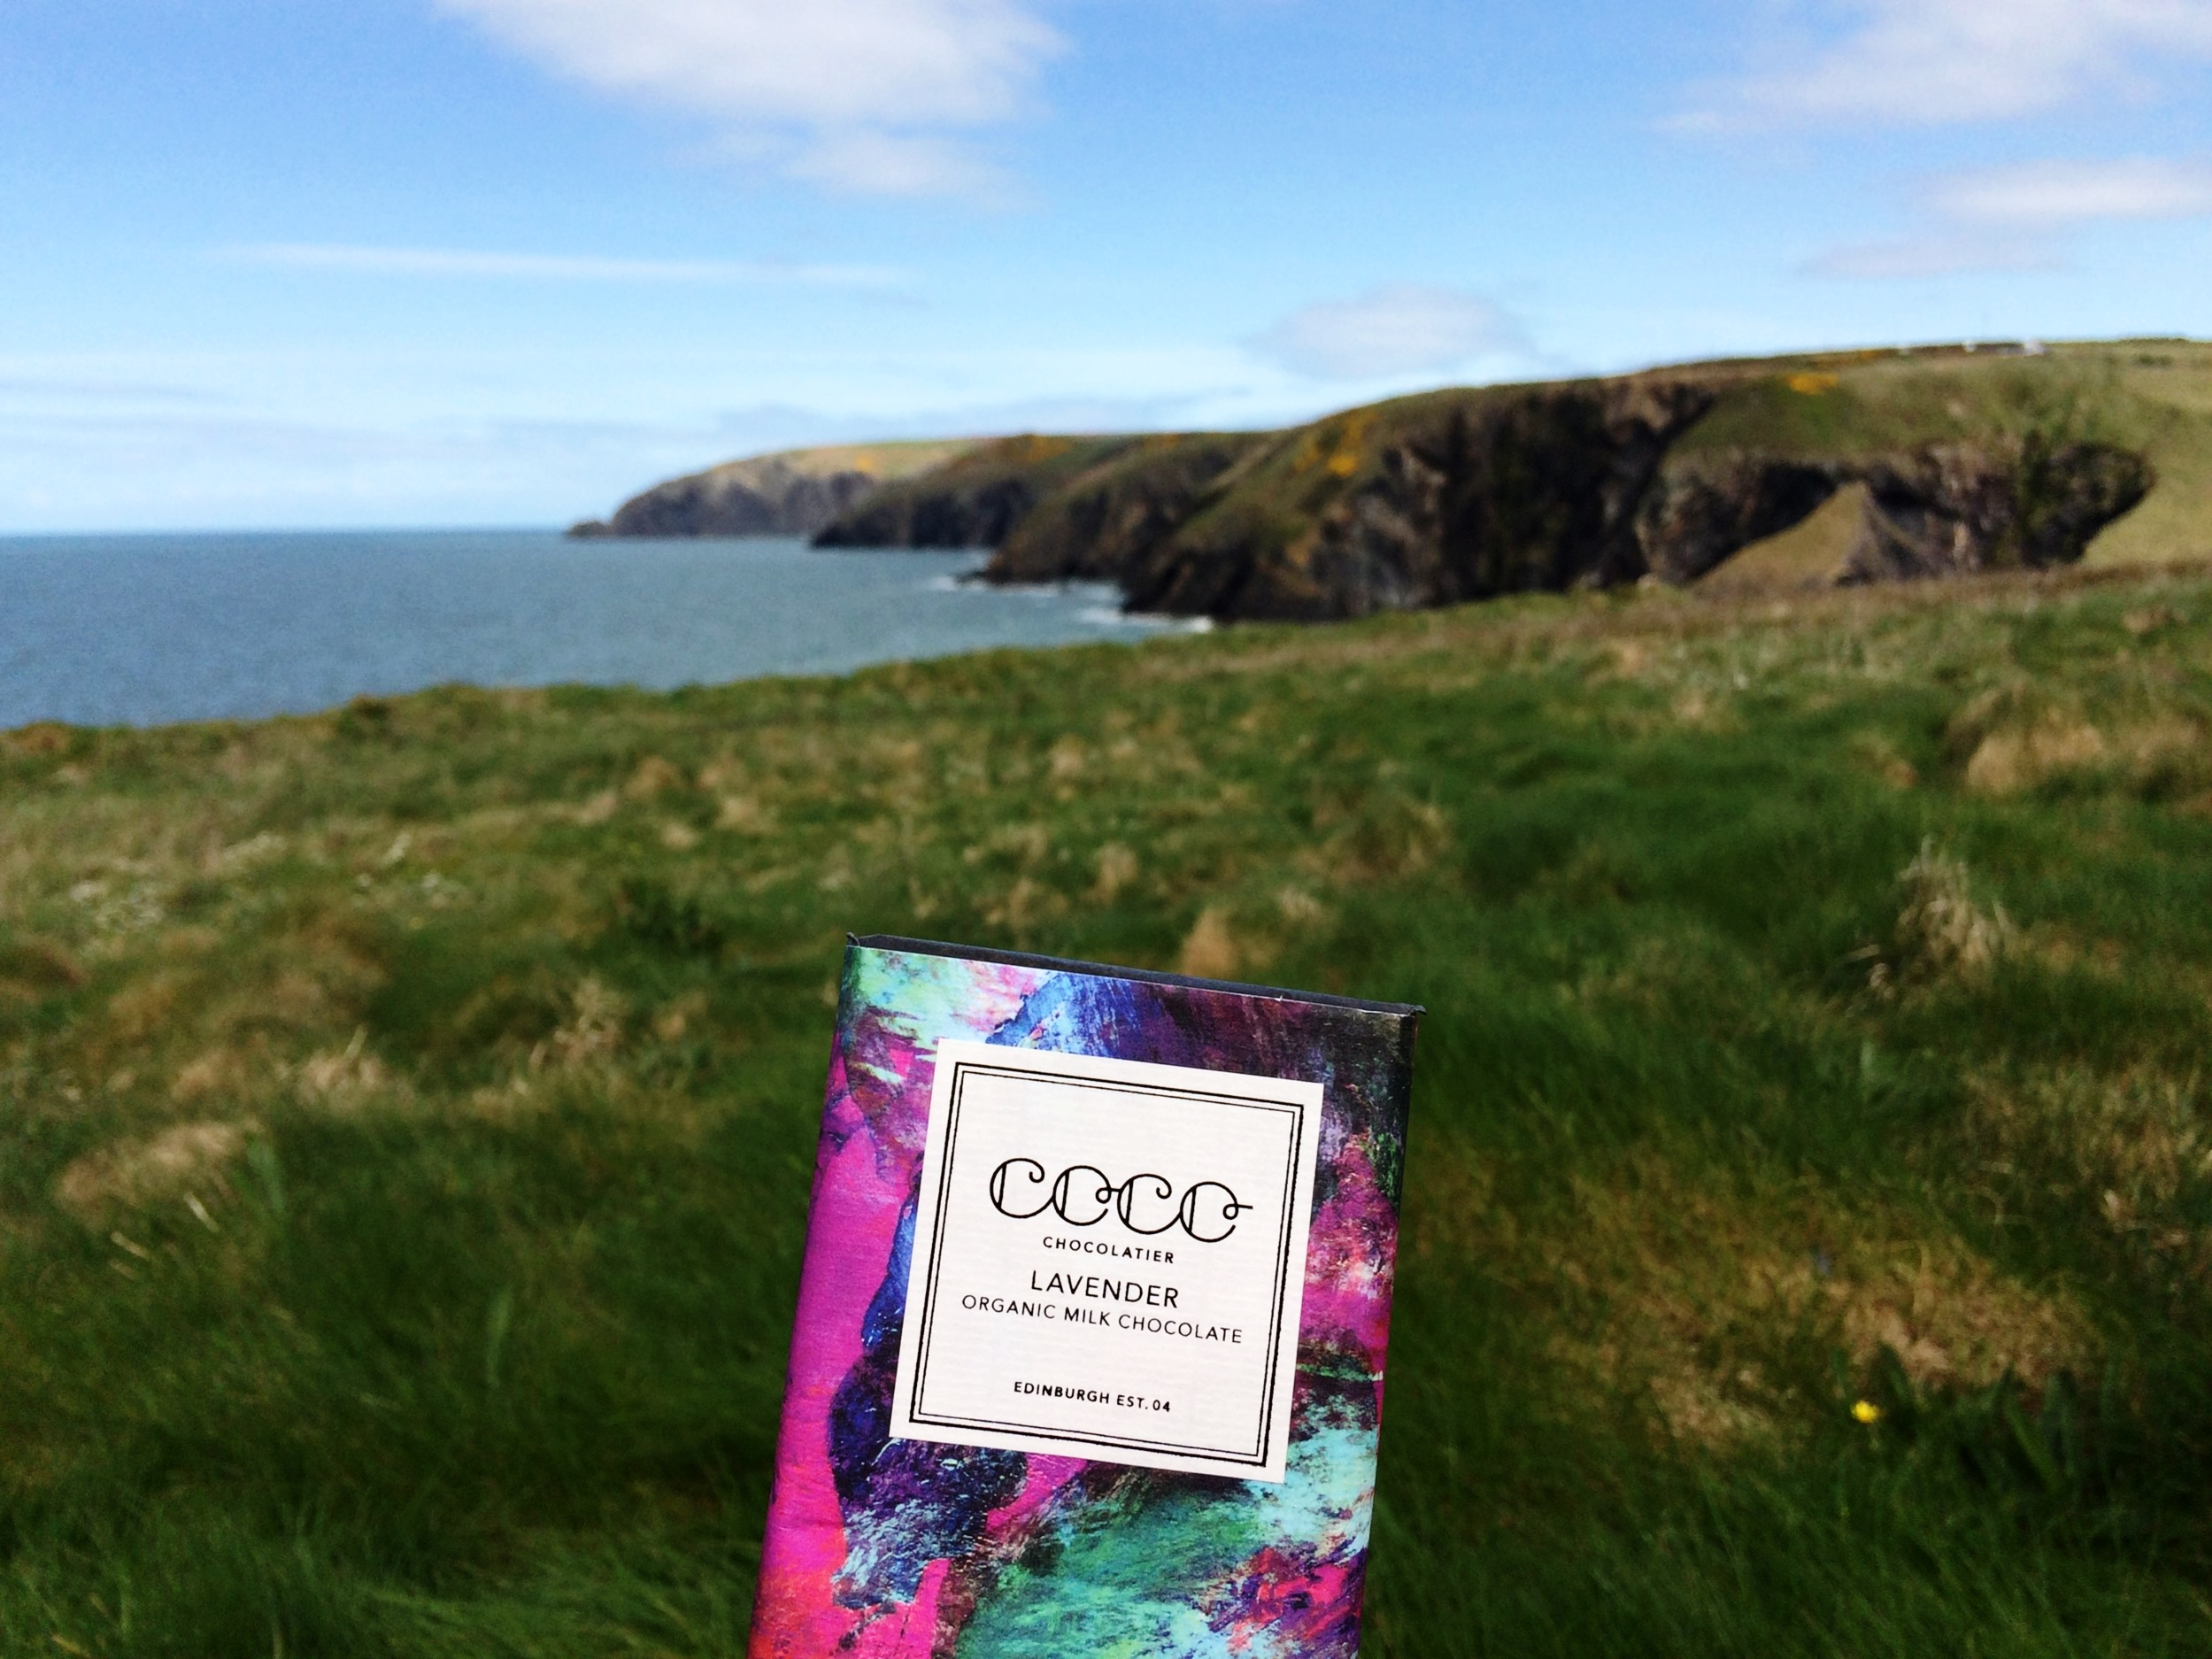 The amazing lavender chocolate we enjoyed as part of our picnic in Moylegrove